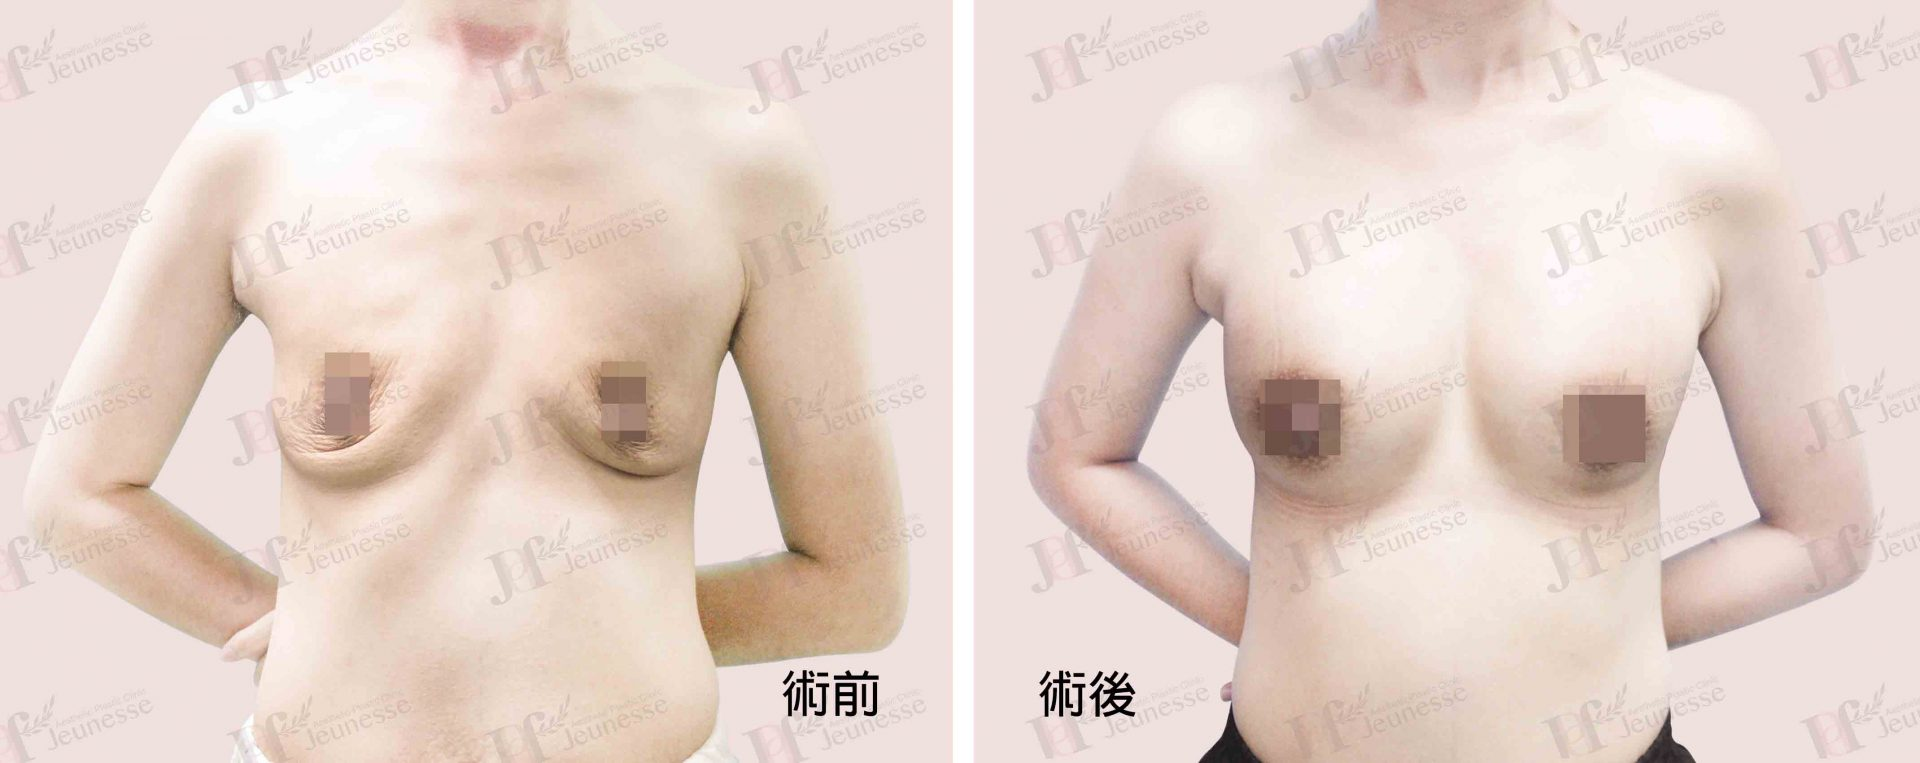 Breast Augmentation- Silicone implants -case2 正面-浮水印